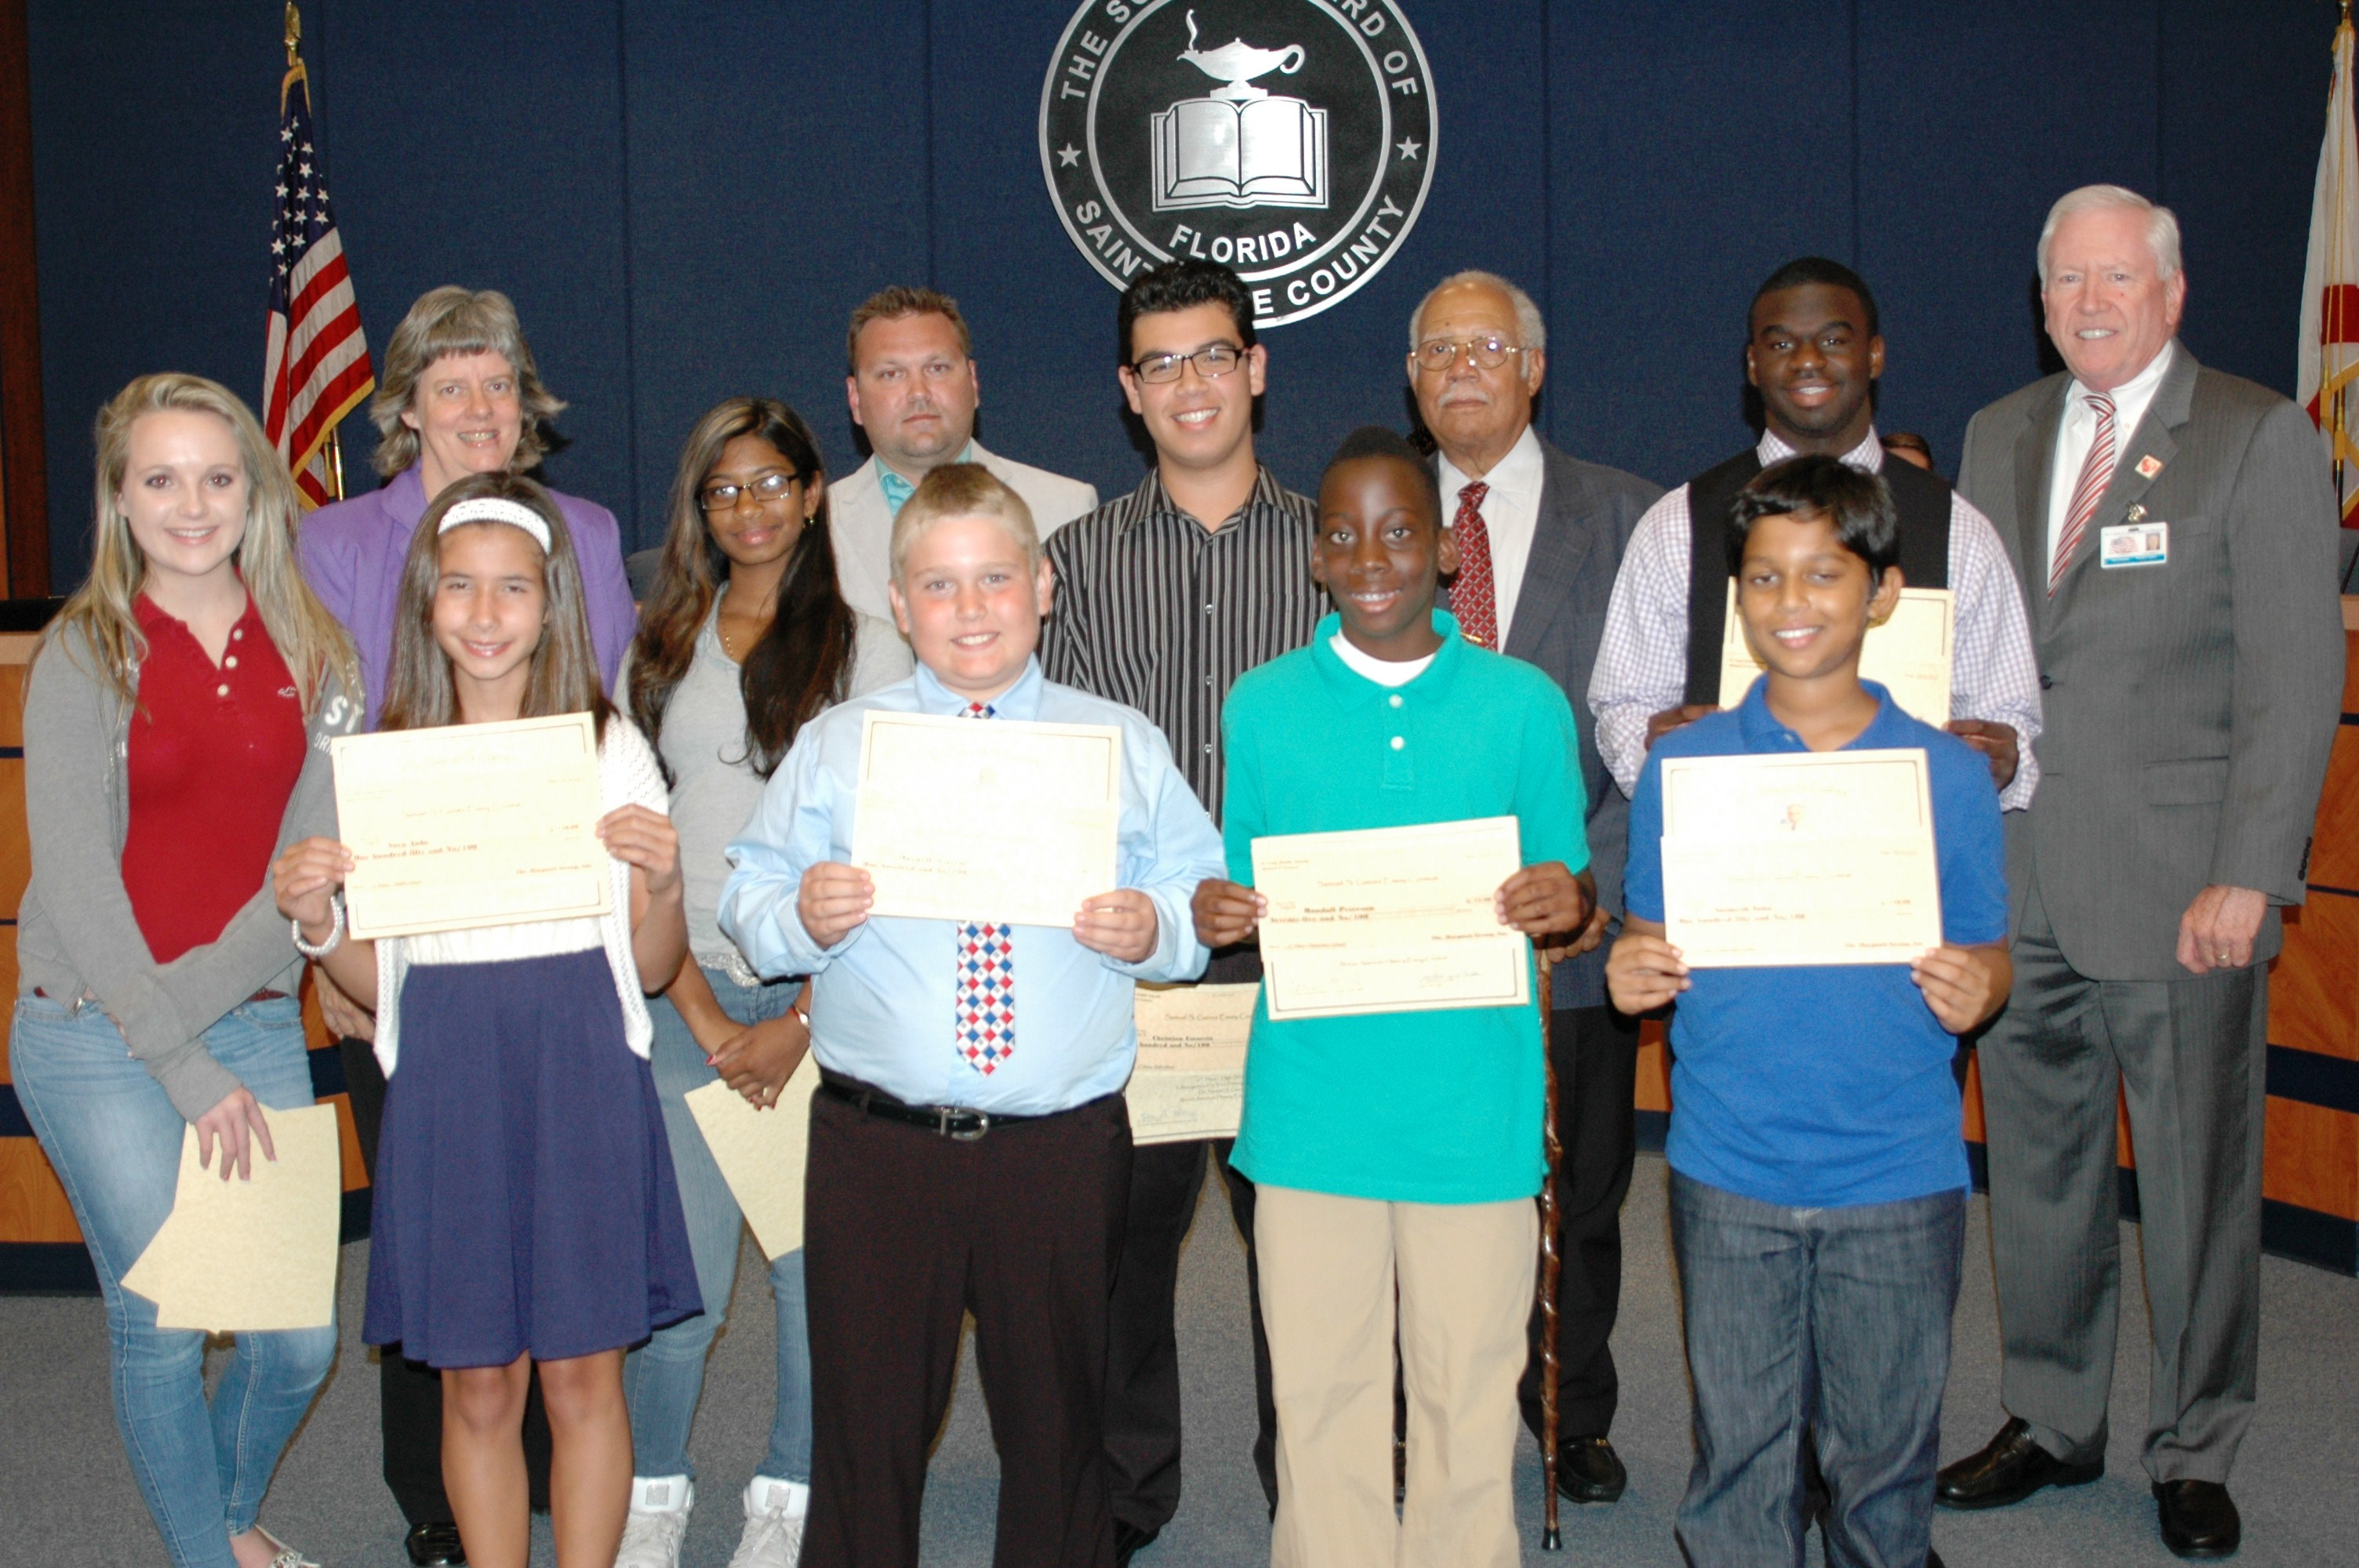 Gaines essay contest winners recognized at school board meeting